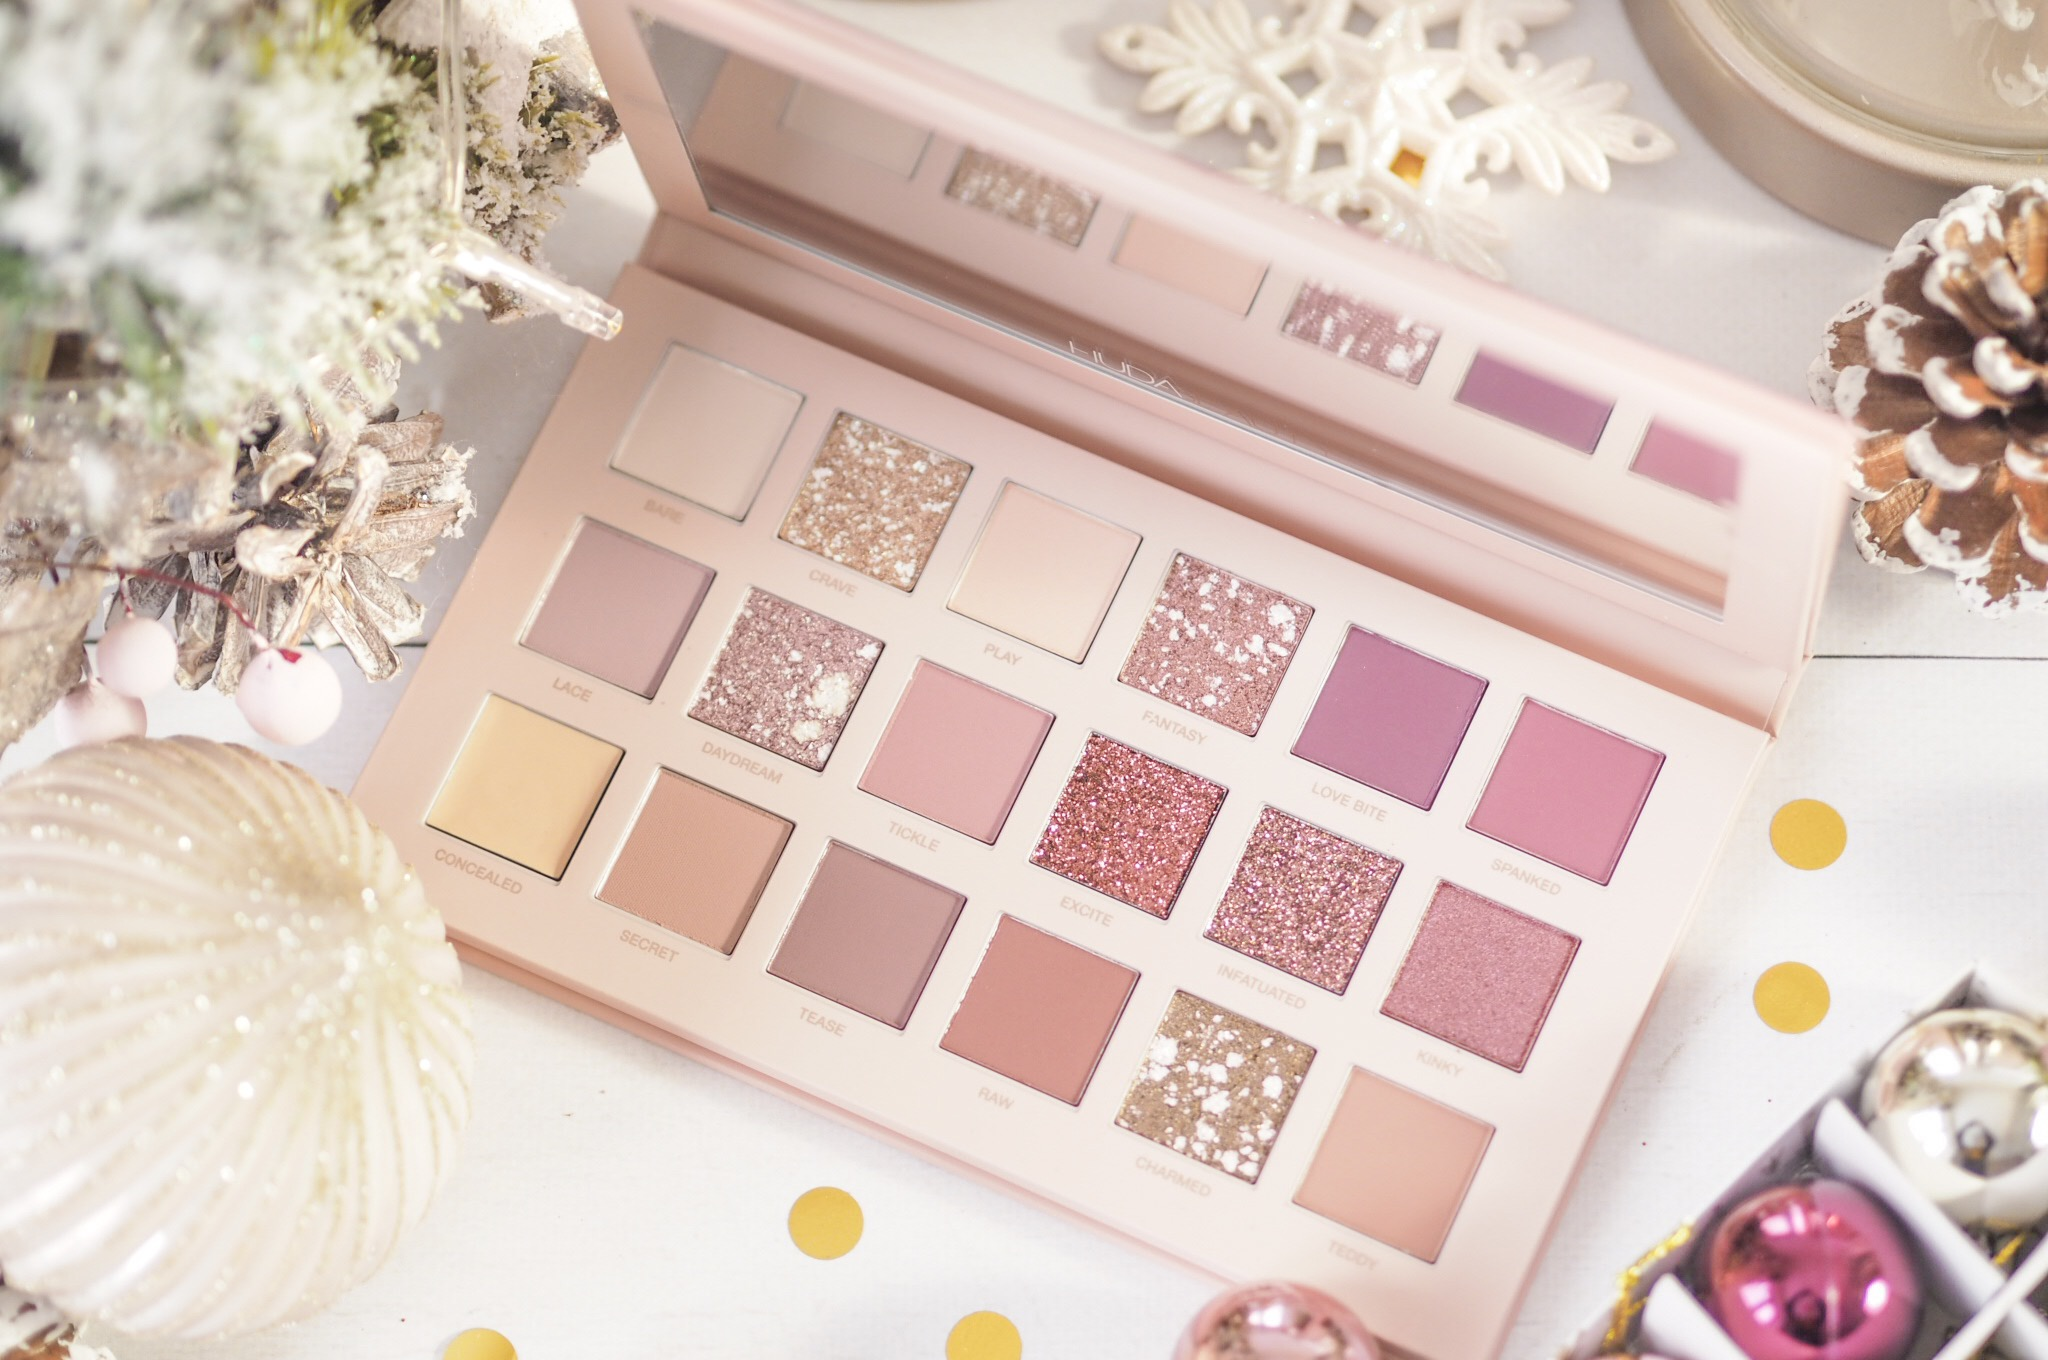 Huda Beauty New Nude Palette - Review